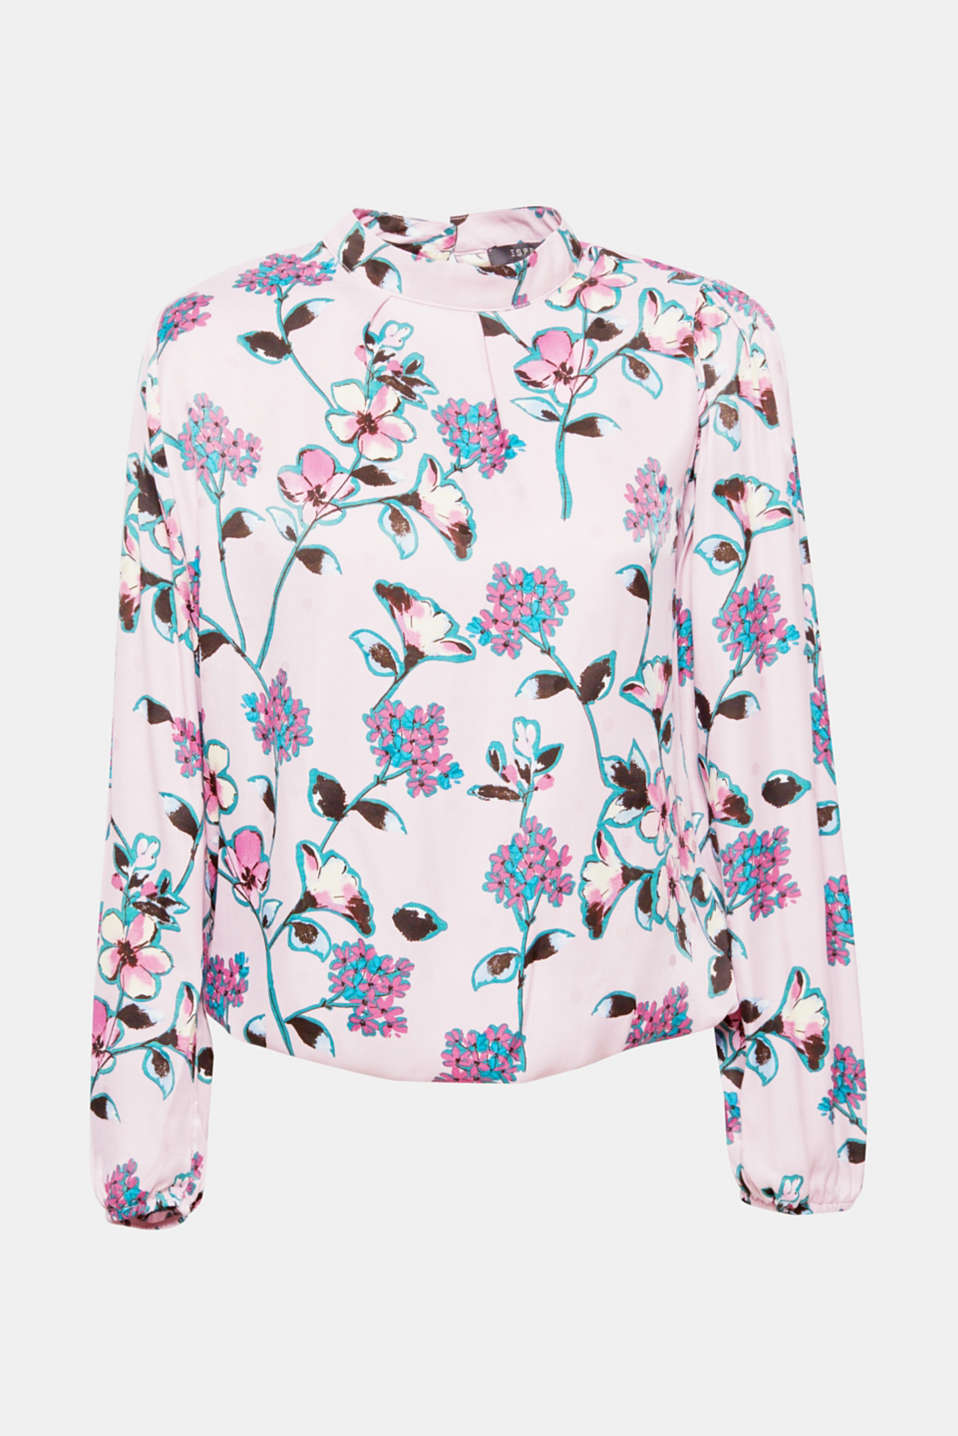 Thanks to the decorative floral prints, small band collar and loose sleeves with narrow elasticated cuffs, this blouse with a fine sheen looks elegant and feminine!